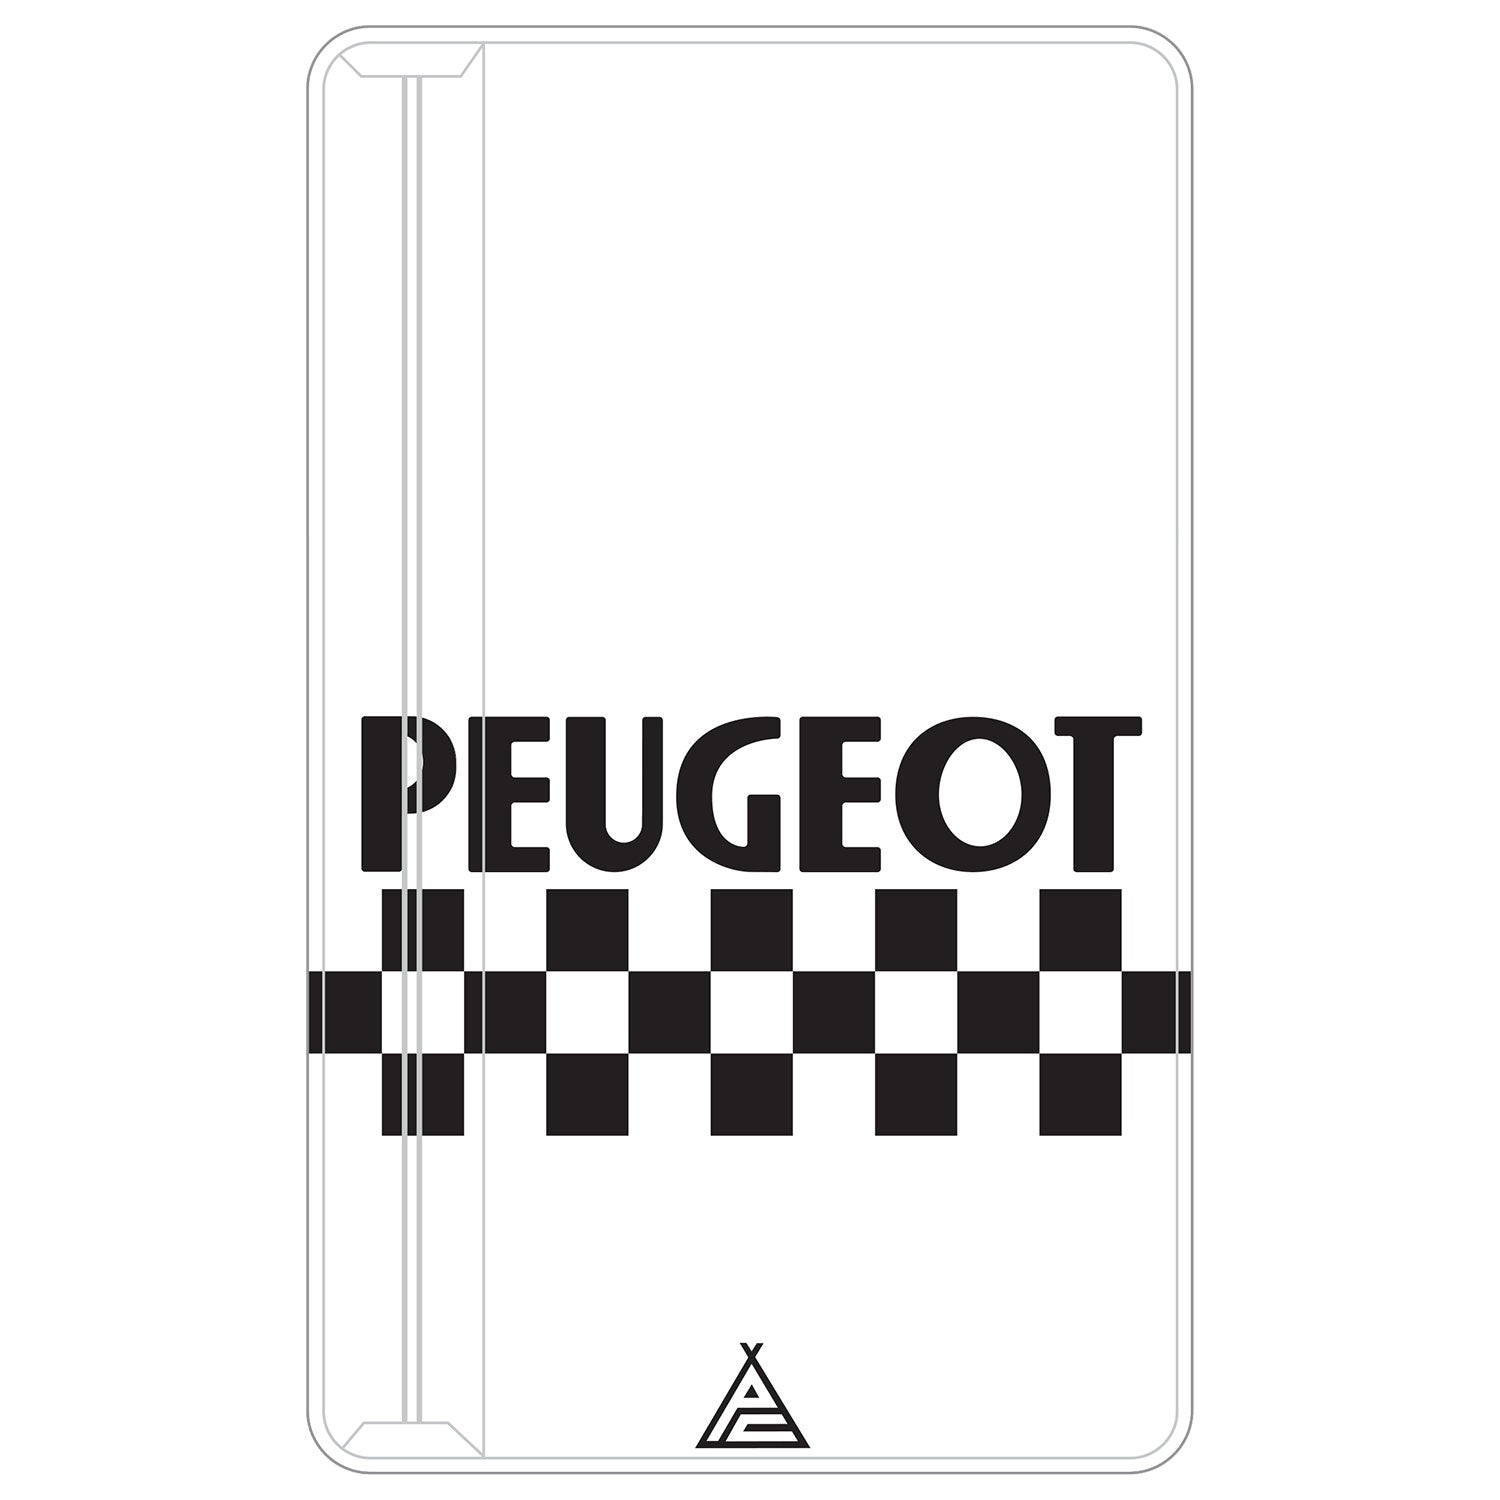 Peugeot Checkerboard Retro PhonePac2